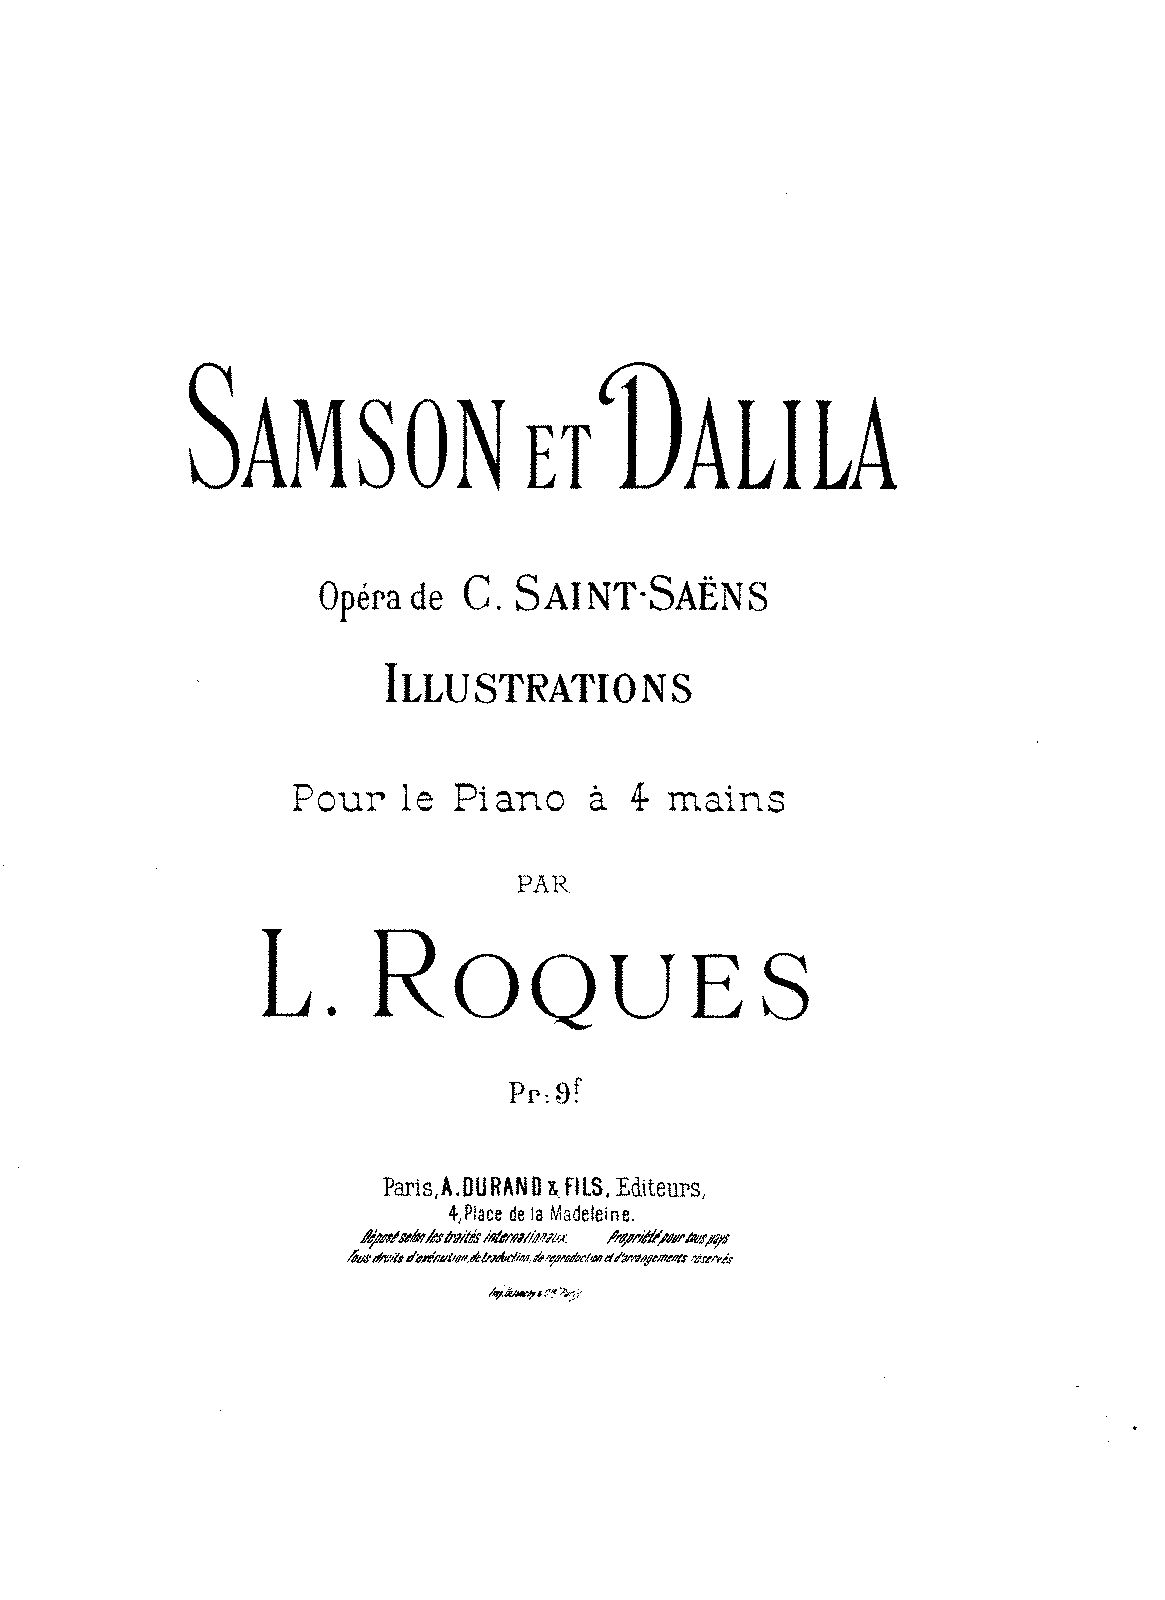 PMLP48364-Saint-Saens Samson et Dalila Illustrations piano 4 hands.pdf